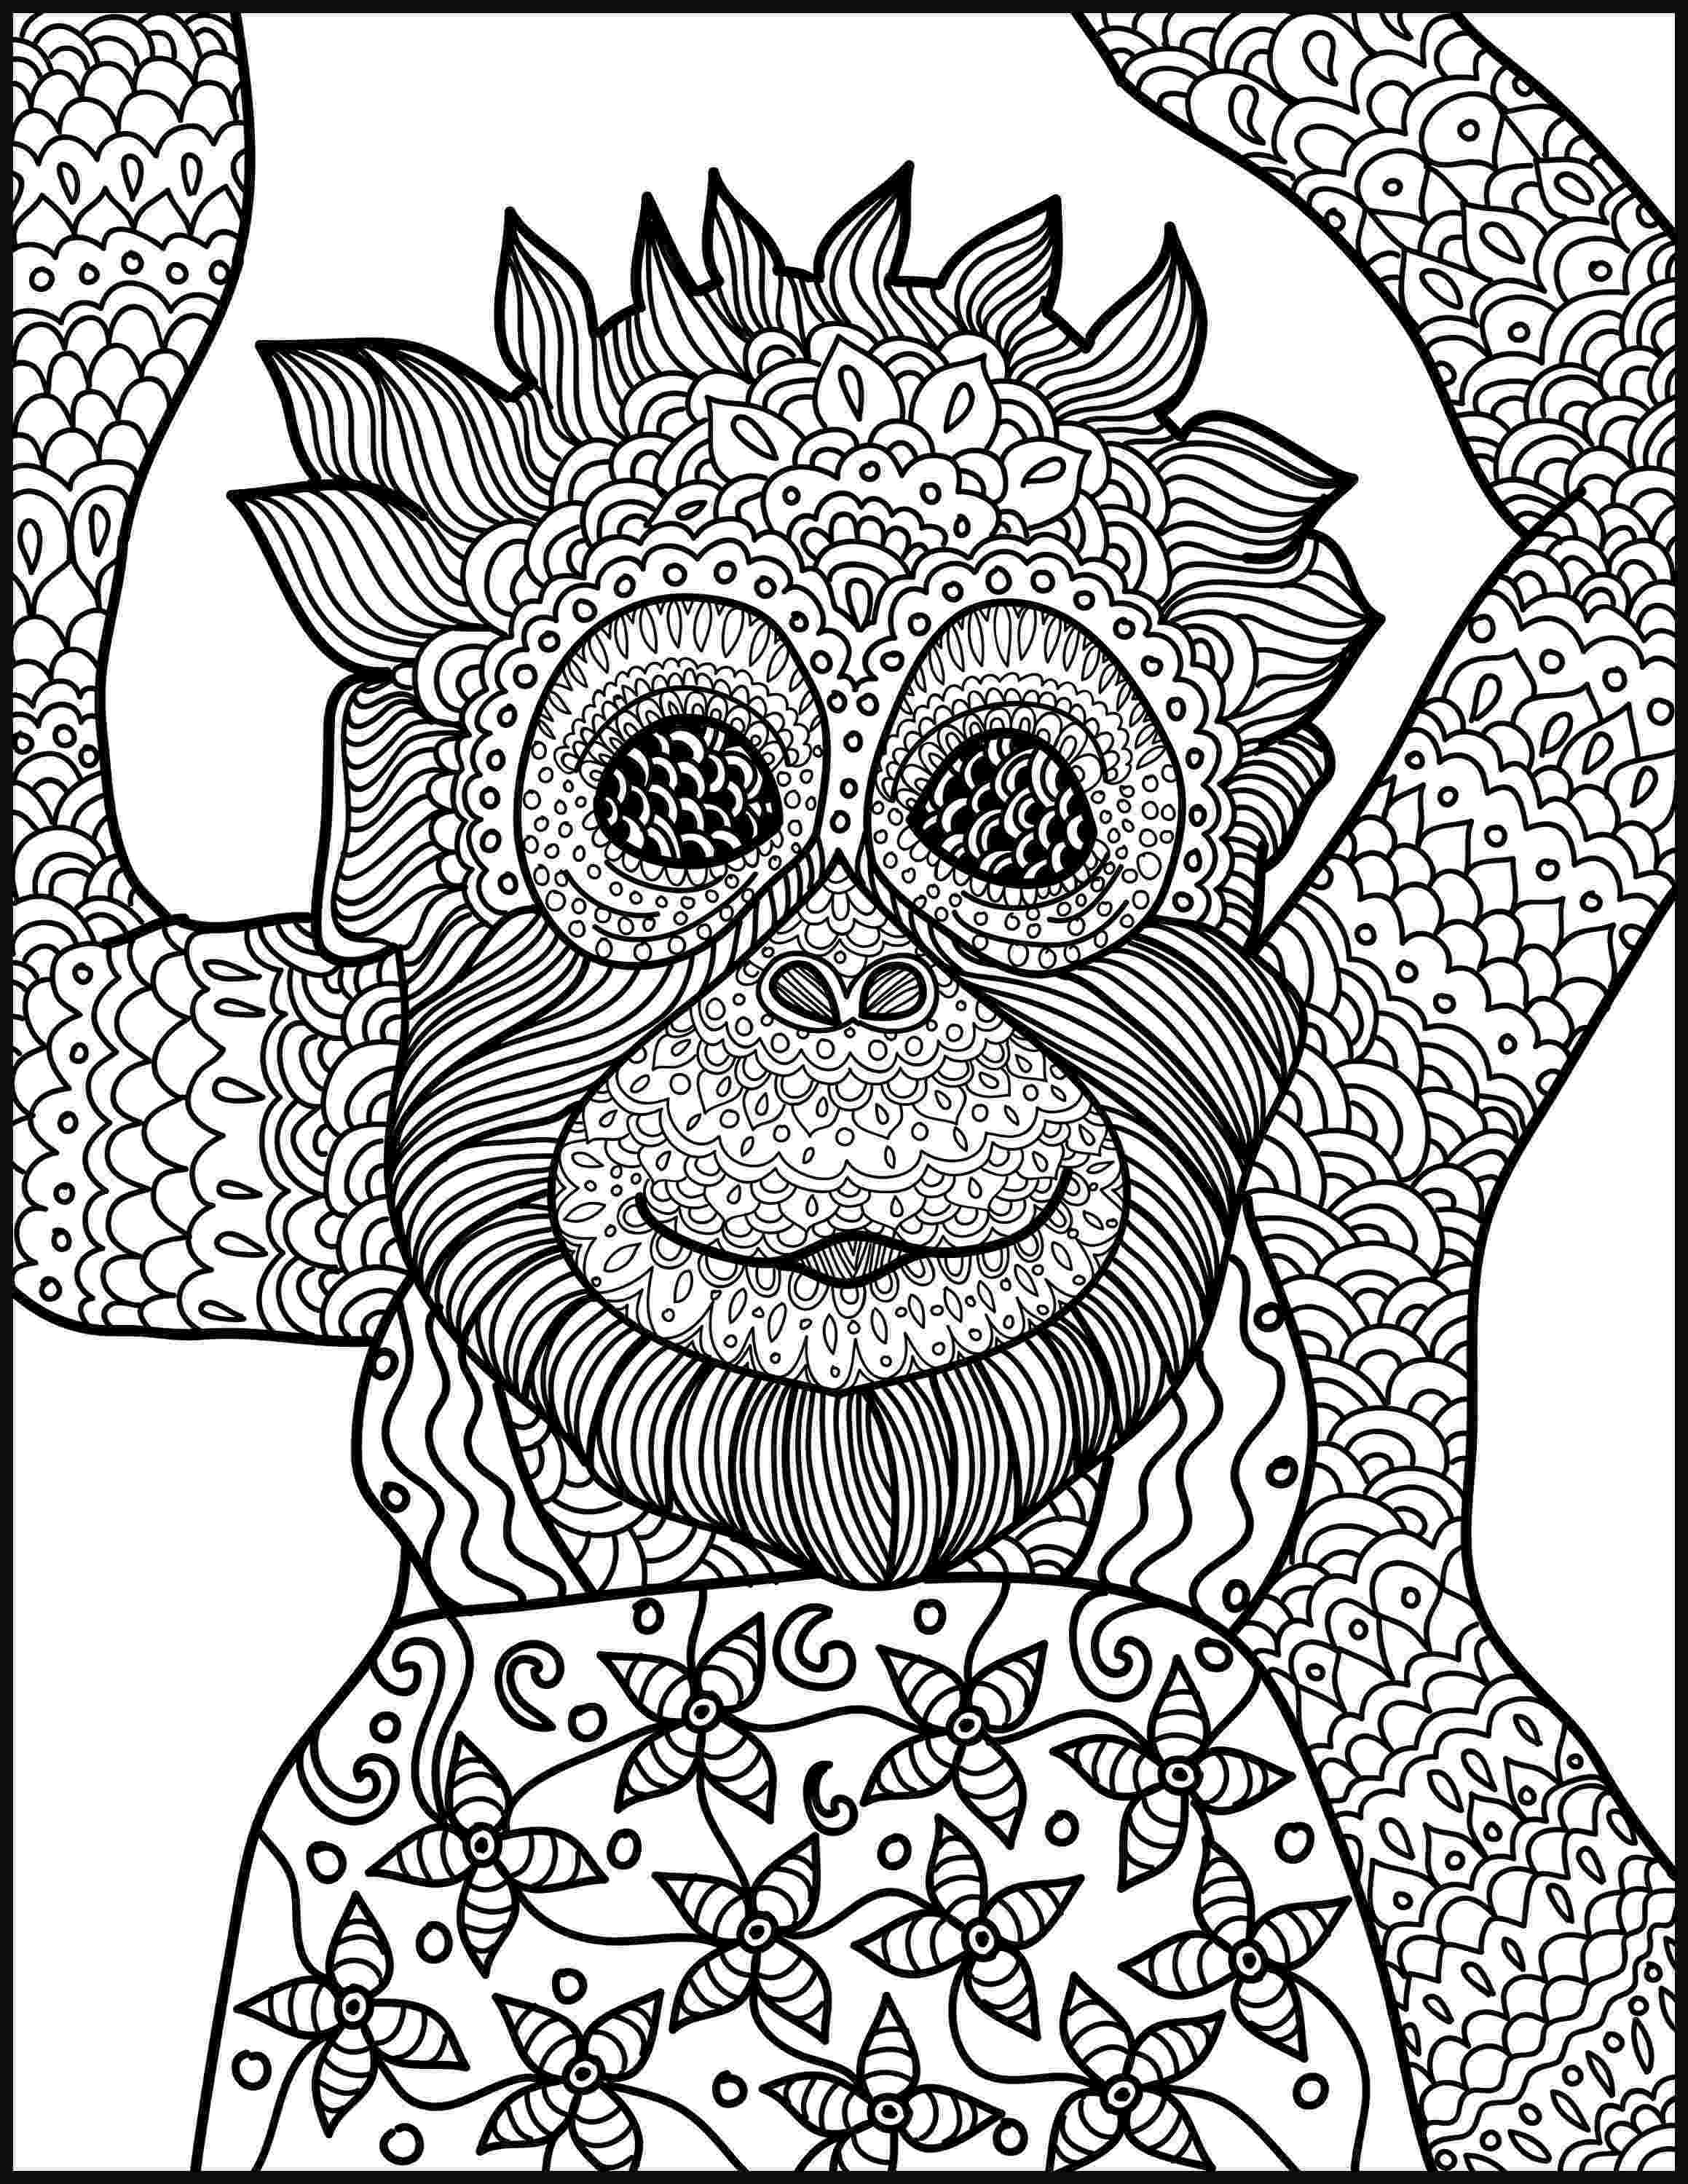 colouring pages for adults animals awesome animals adult coloring pages coloring pages adults for pages animals colouring